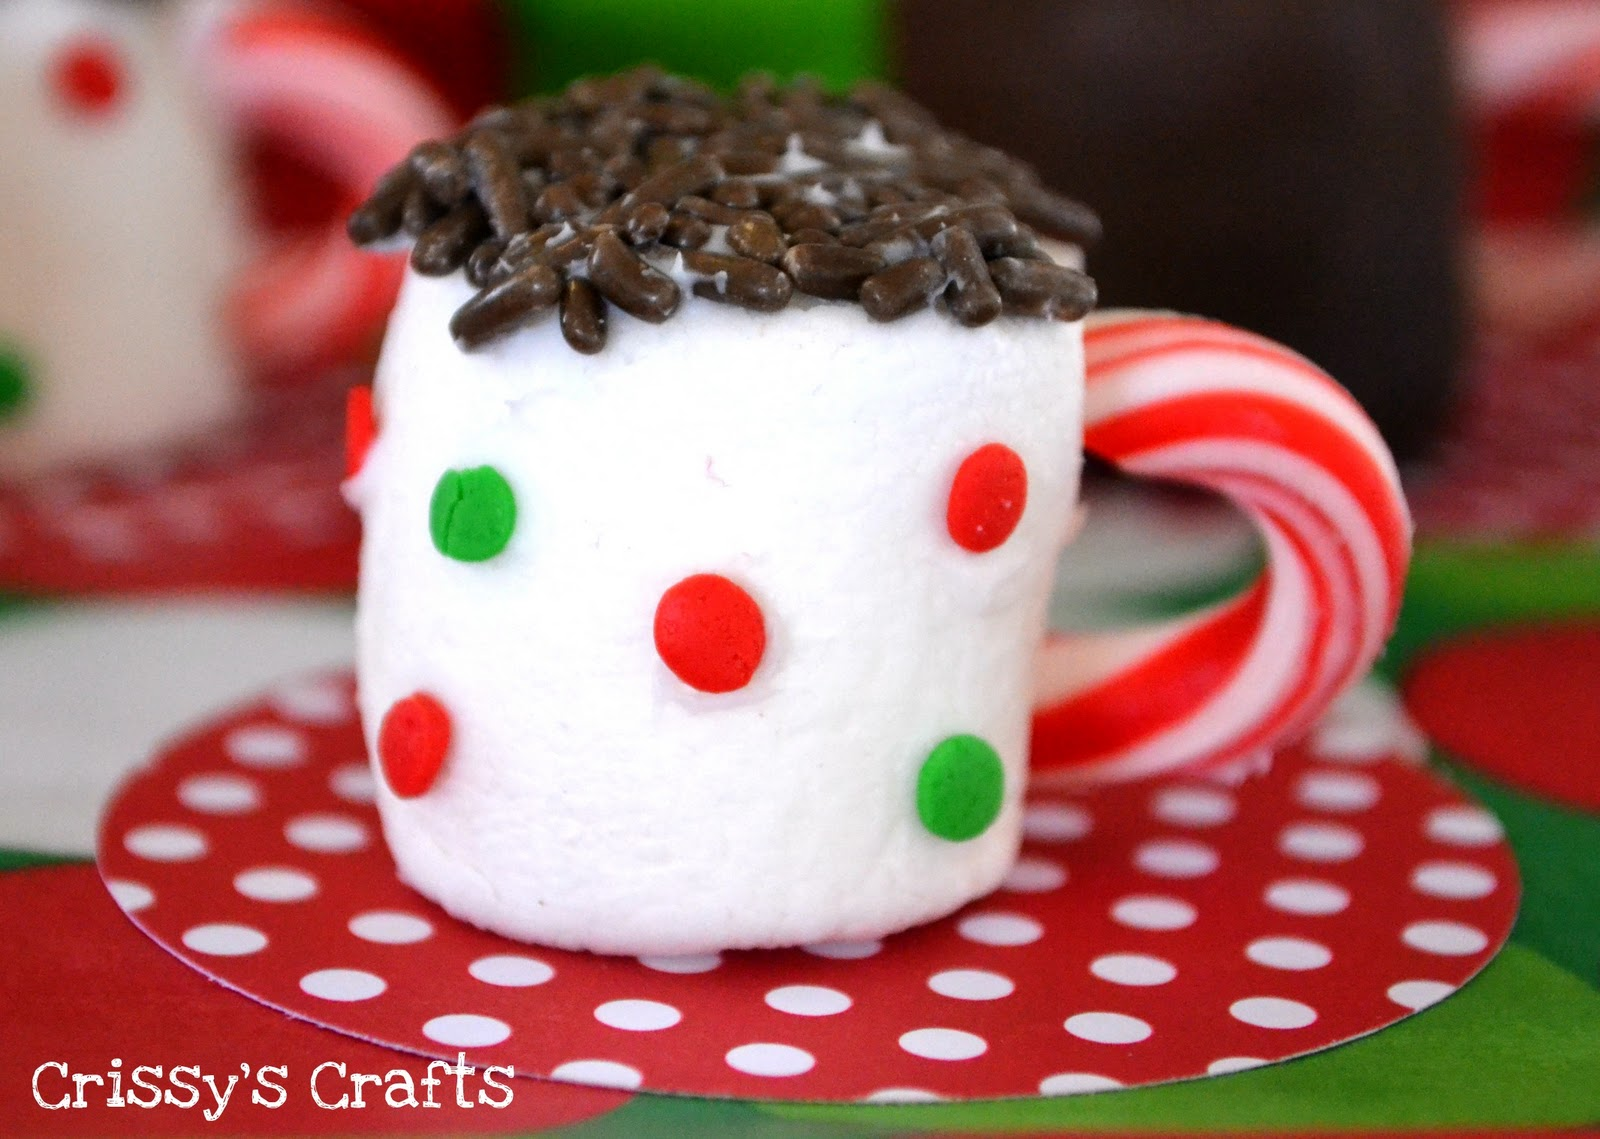 DIY Edible Hot Cocoa Mug Mini-Desserts - via BirdsParty.com